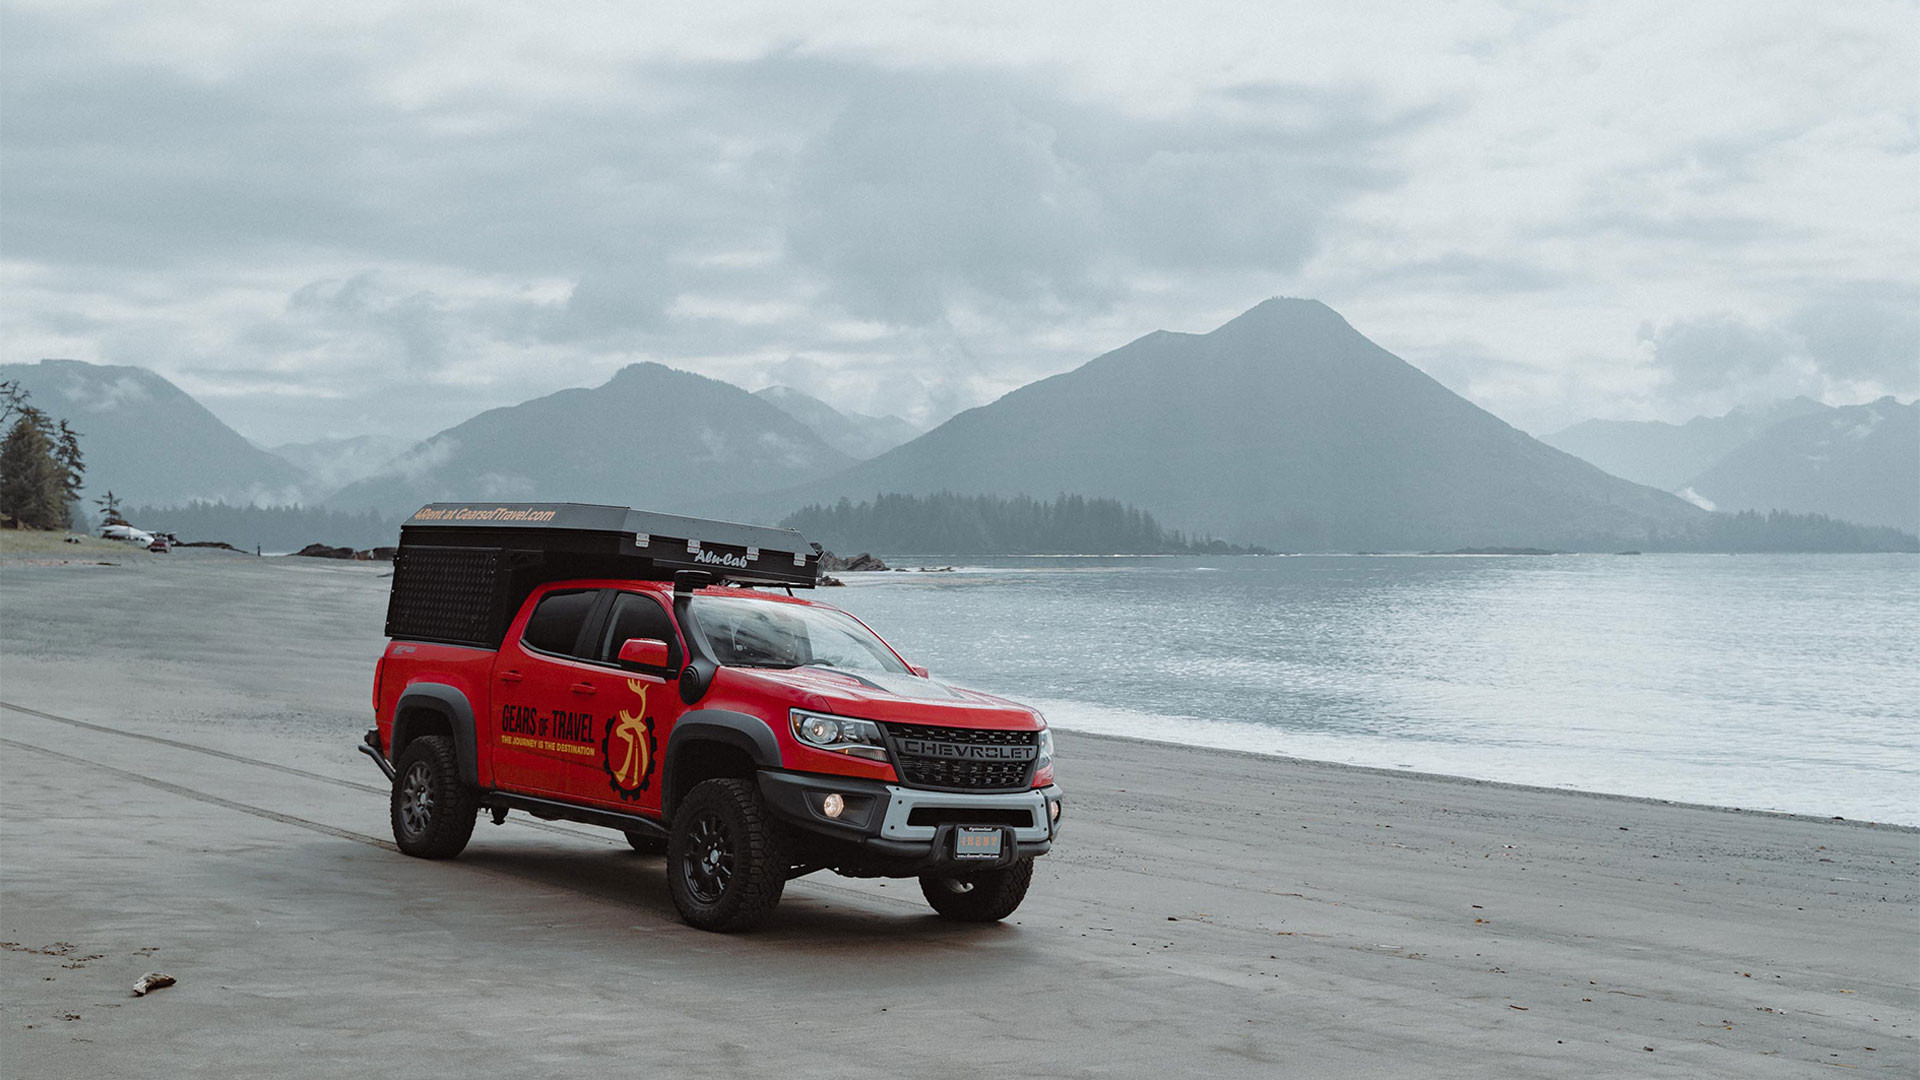 Gears of Travel, Canadian adventure | Chevrolet with canopy camper on beach